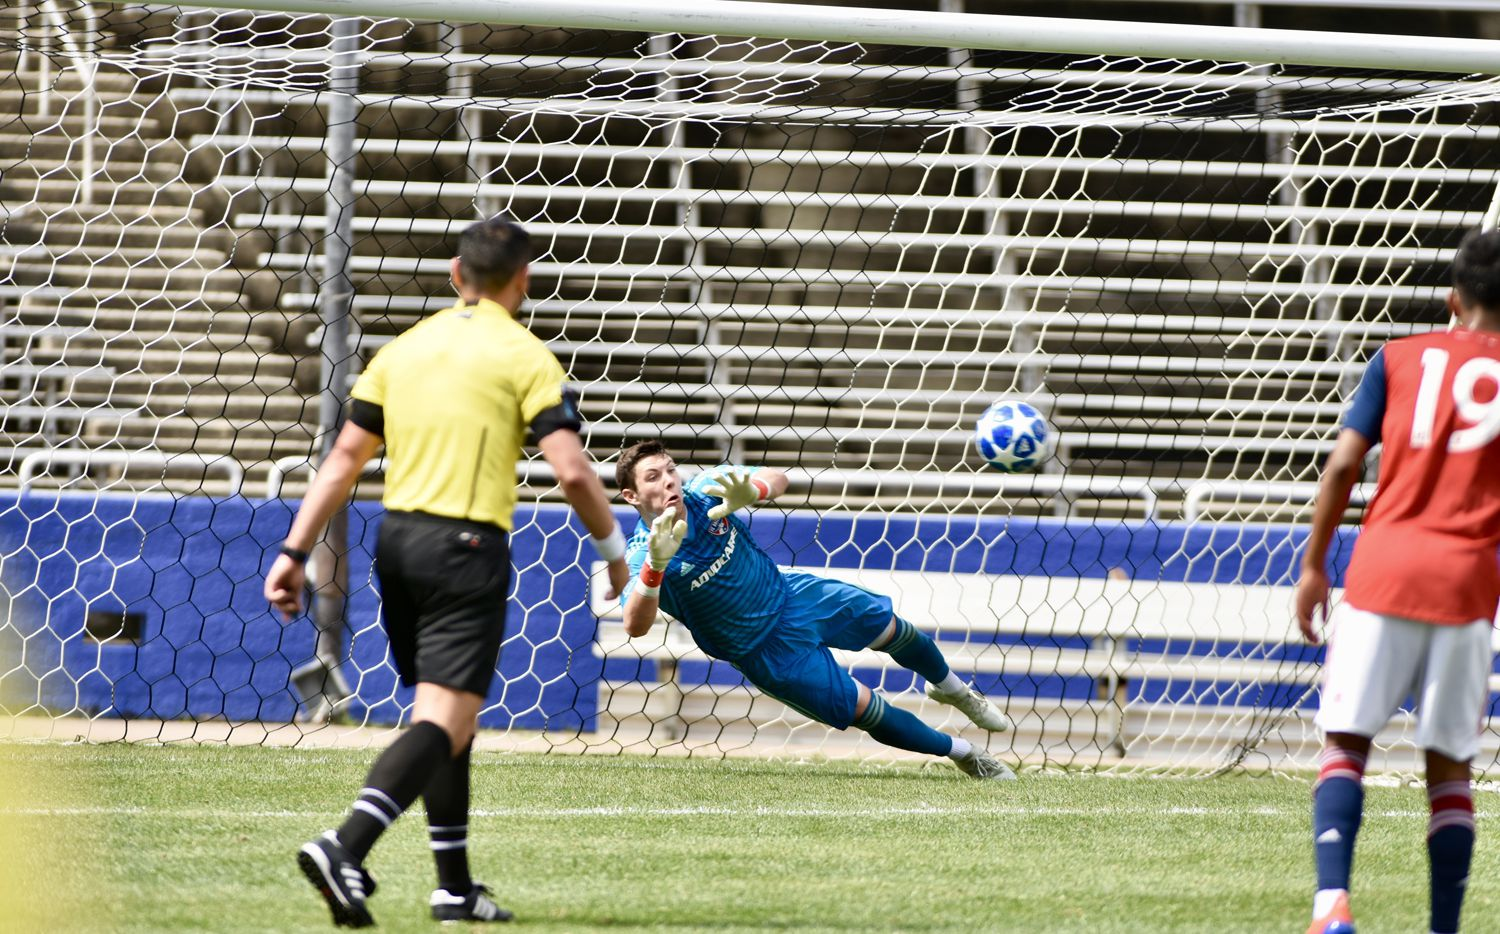 Michael Collodi dives to his right to save a penalty kick against Red Bull Brasil in the 2019 Dallas Cup at the Cotton Bowl. (4-17-19)